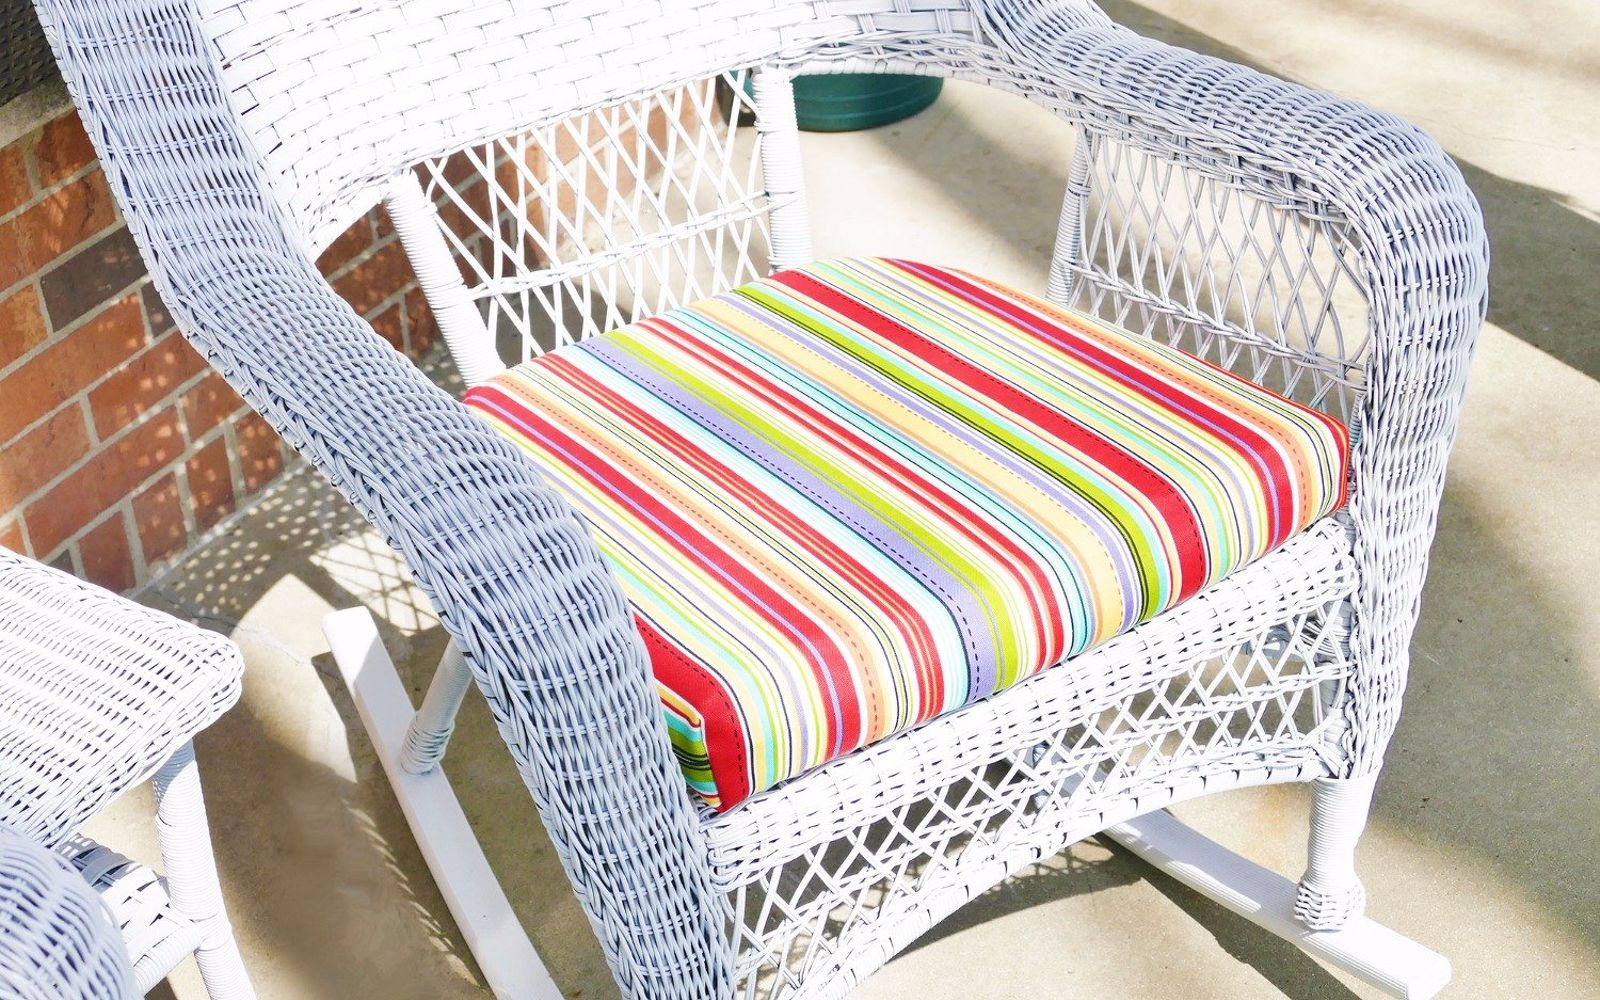 s 12 pool chair ideas we never would have thought of, Make A Change To Your Chair Cushions